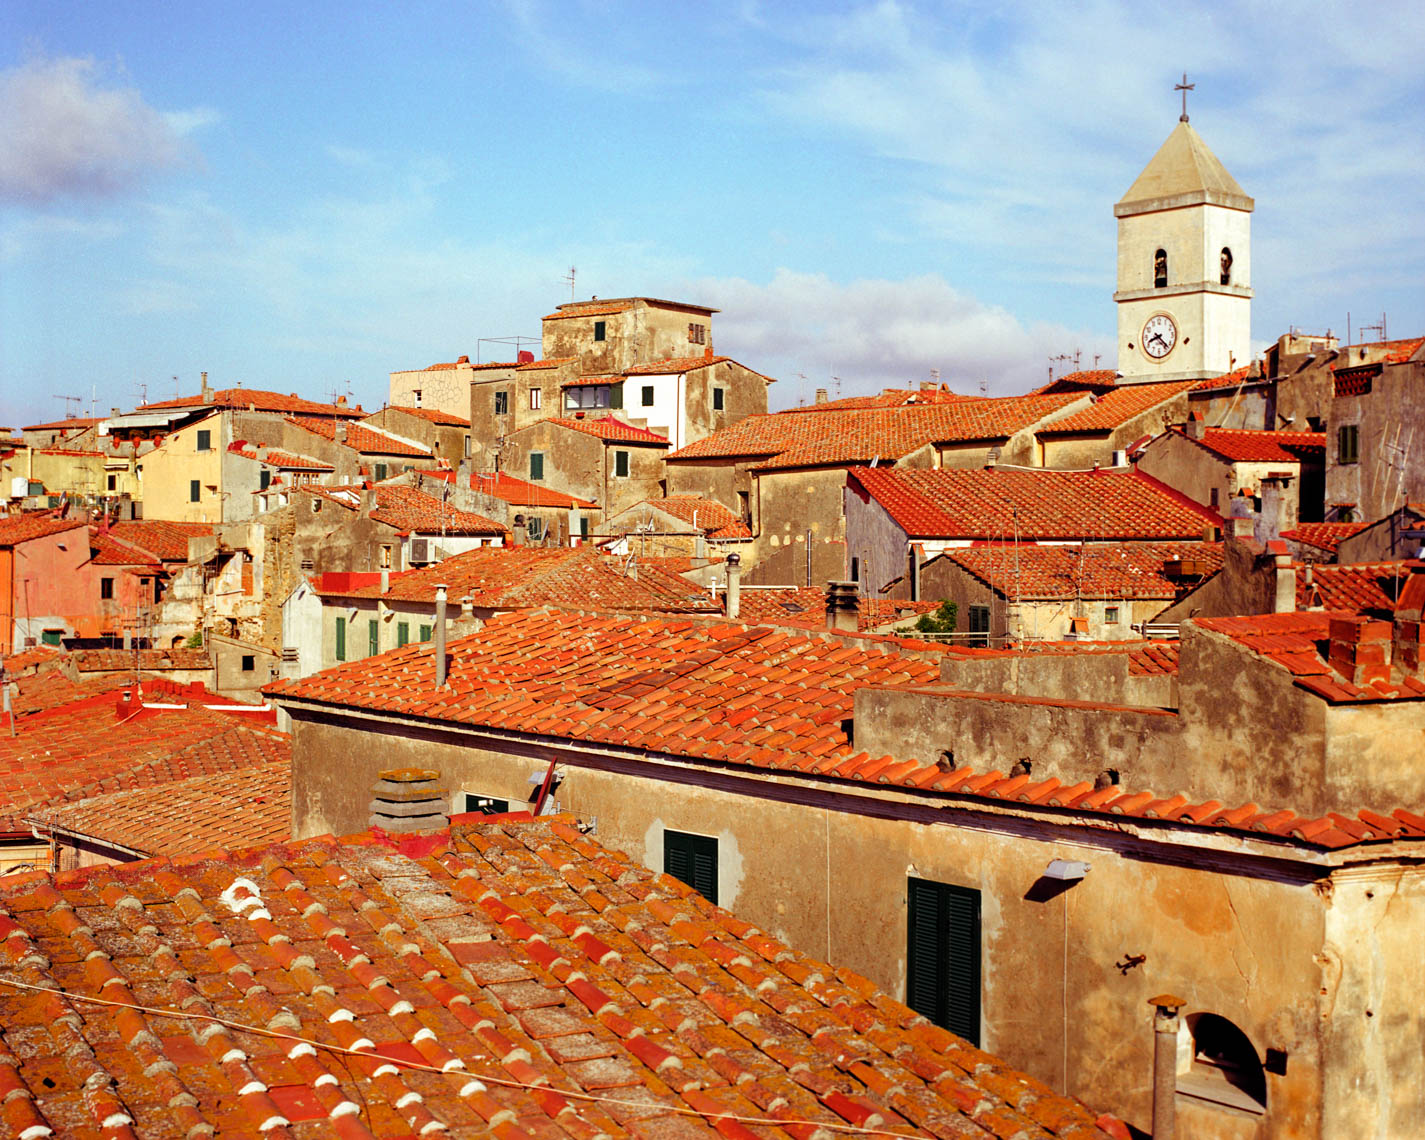 Red Italian rooftops | Tosca Radigonda Photography